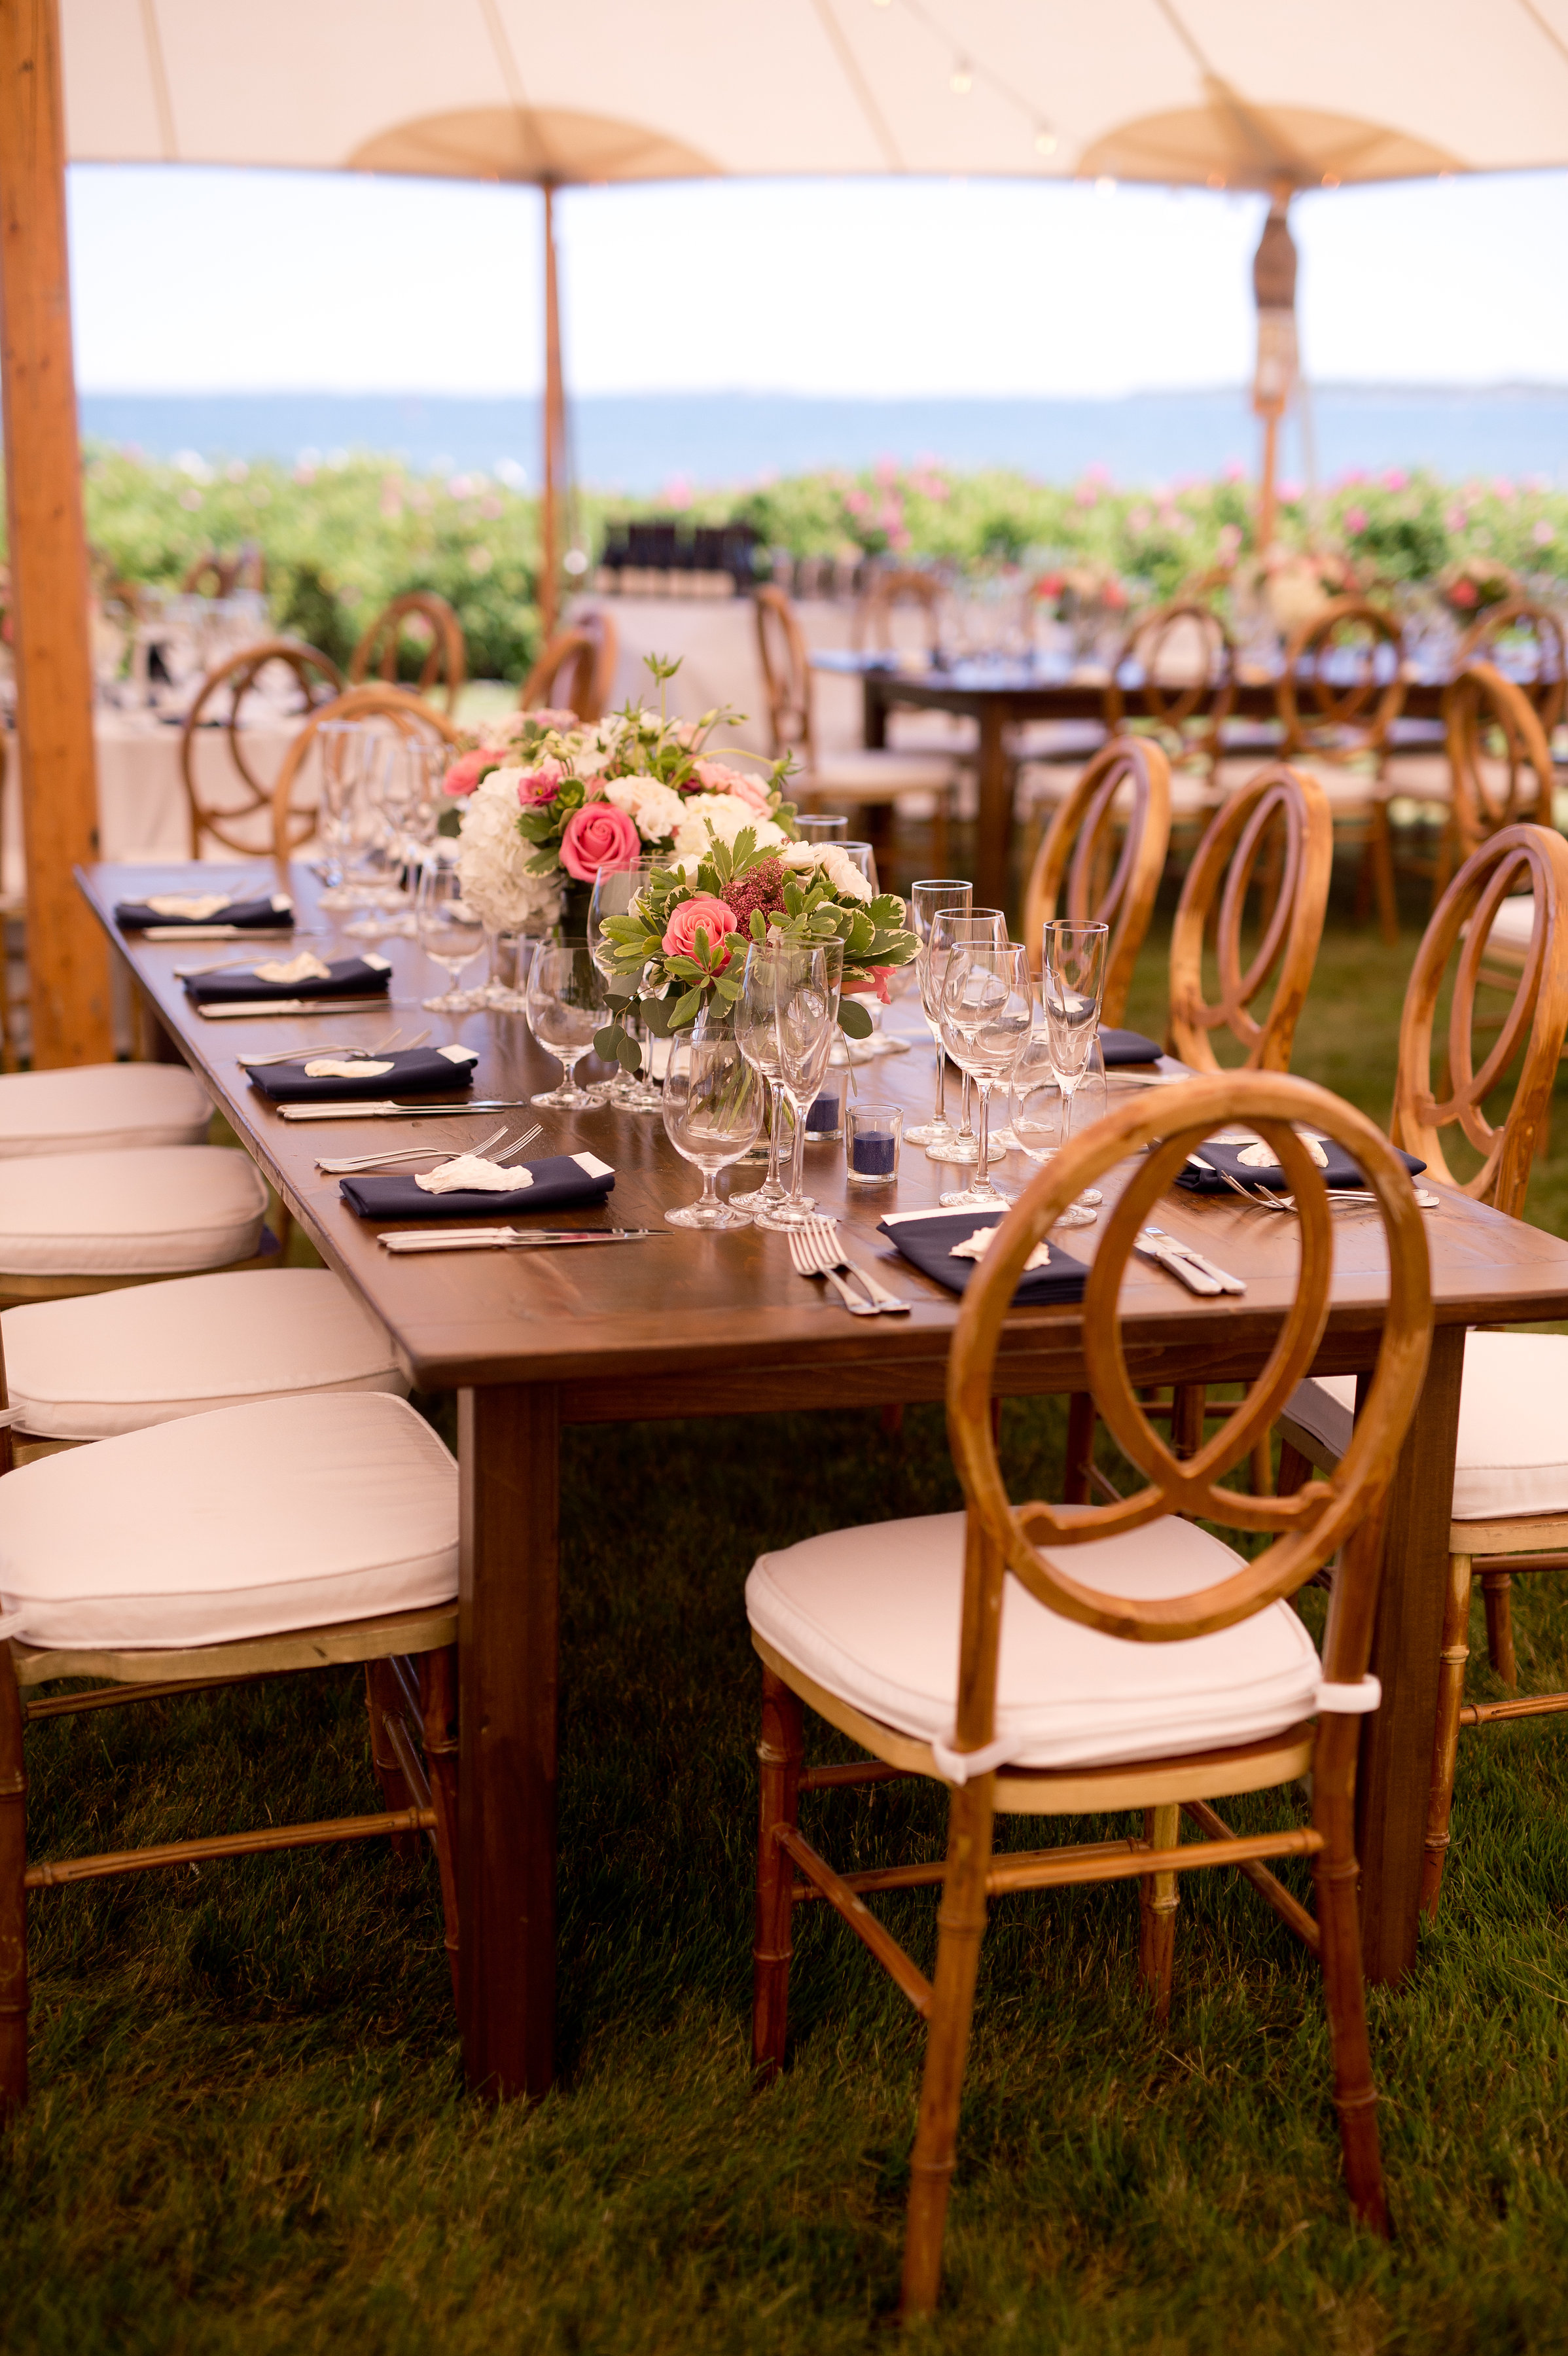 A glorious Sperry Tent nestled against the coastline set the stage for an amazing celebration for 200+ special guests and loved ones.